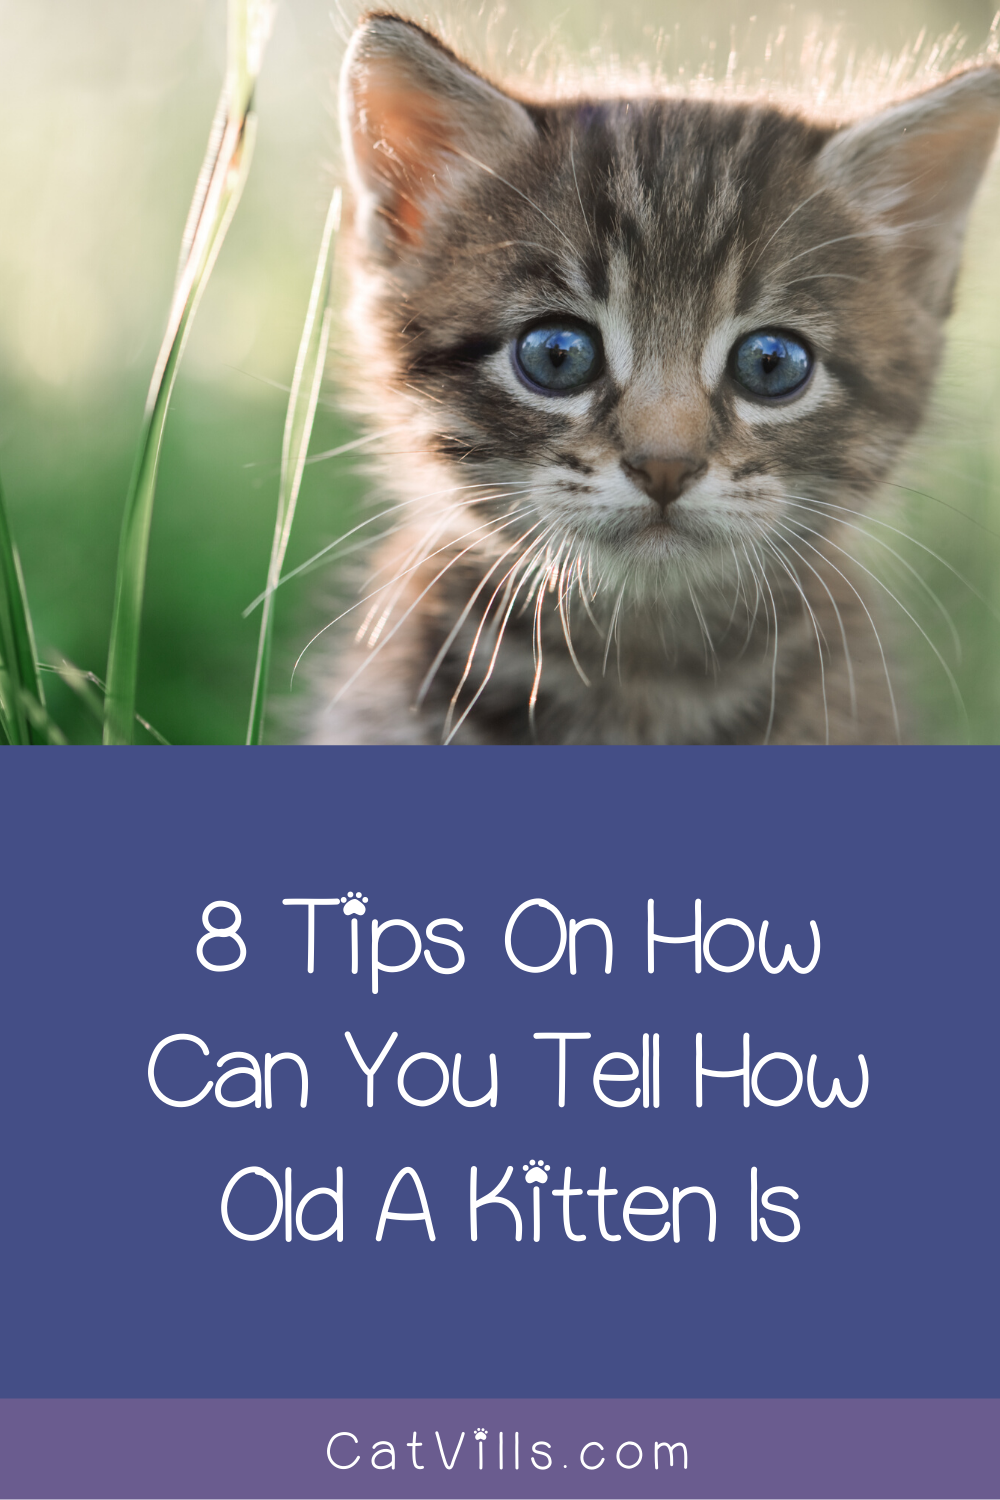 How Can You Tell How Old A Kitten Is Follow These 8 Tips Catvills In 2020 Sick Kitten Kittens Cutest Funny Cat Memes